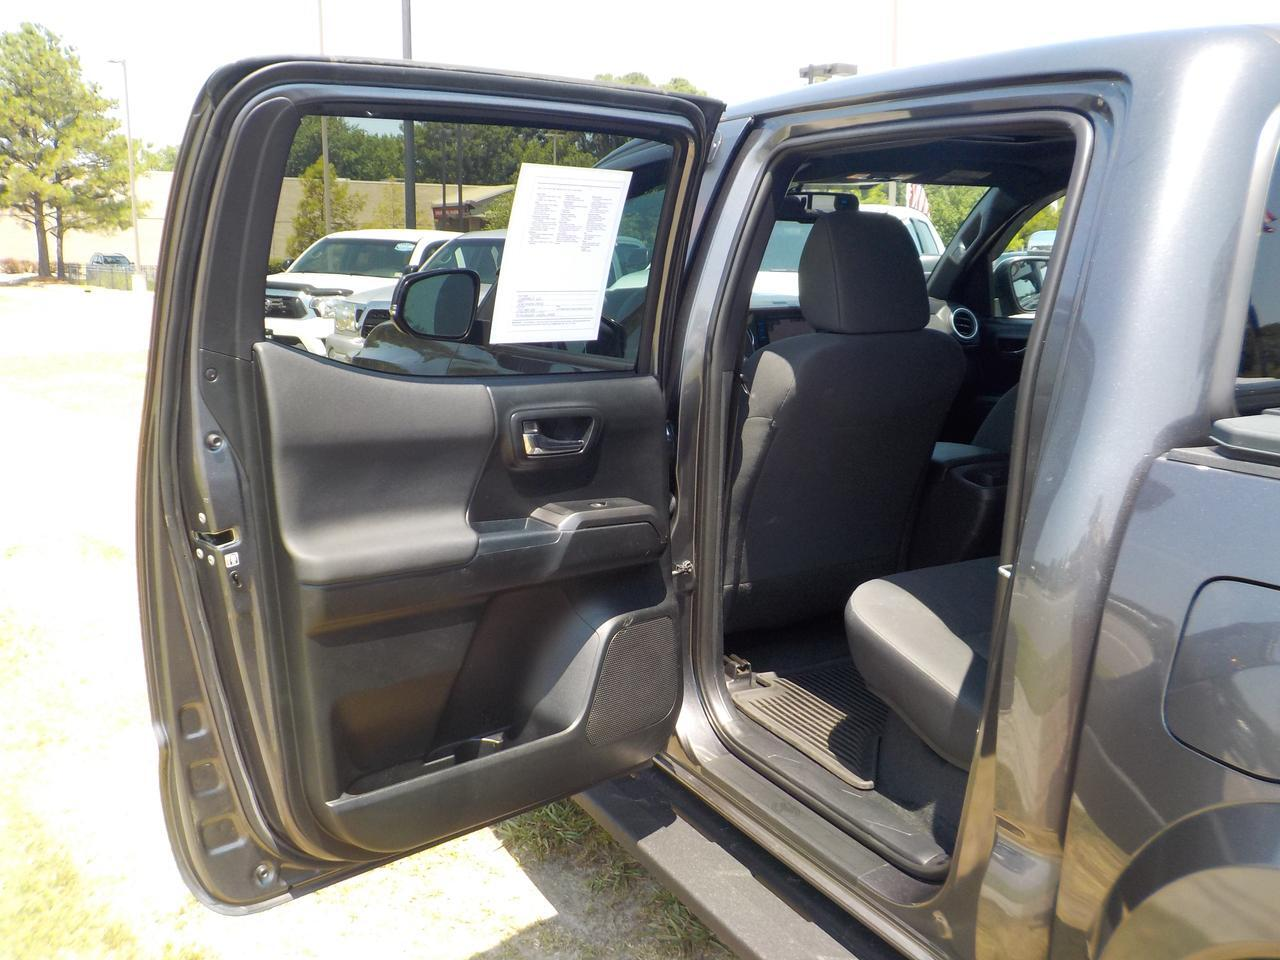 2017 TOYOTA TACOMA DOUBLE CAB SR5 4X4, ONE OWNER, LEATHER, NAVI, HEATED SEATS, HARD TONNEAU COVER, ONLY 35K MILES! Virginia Beach VA